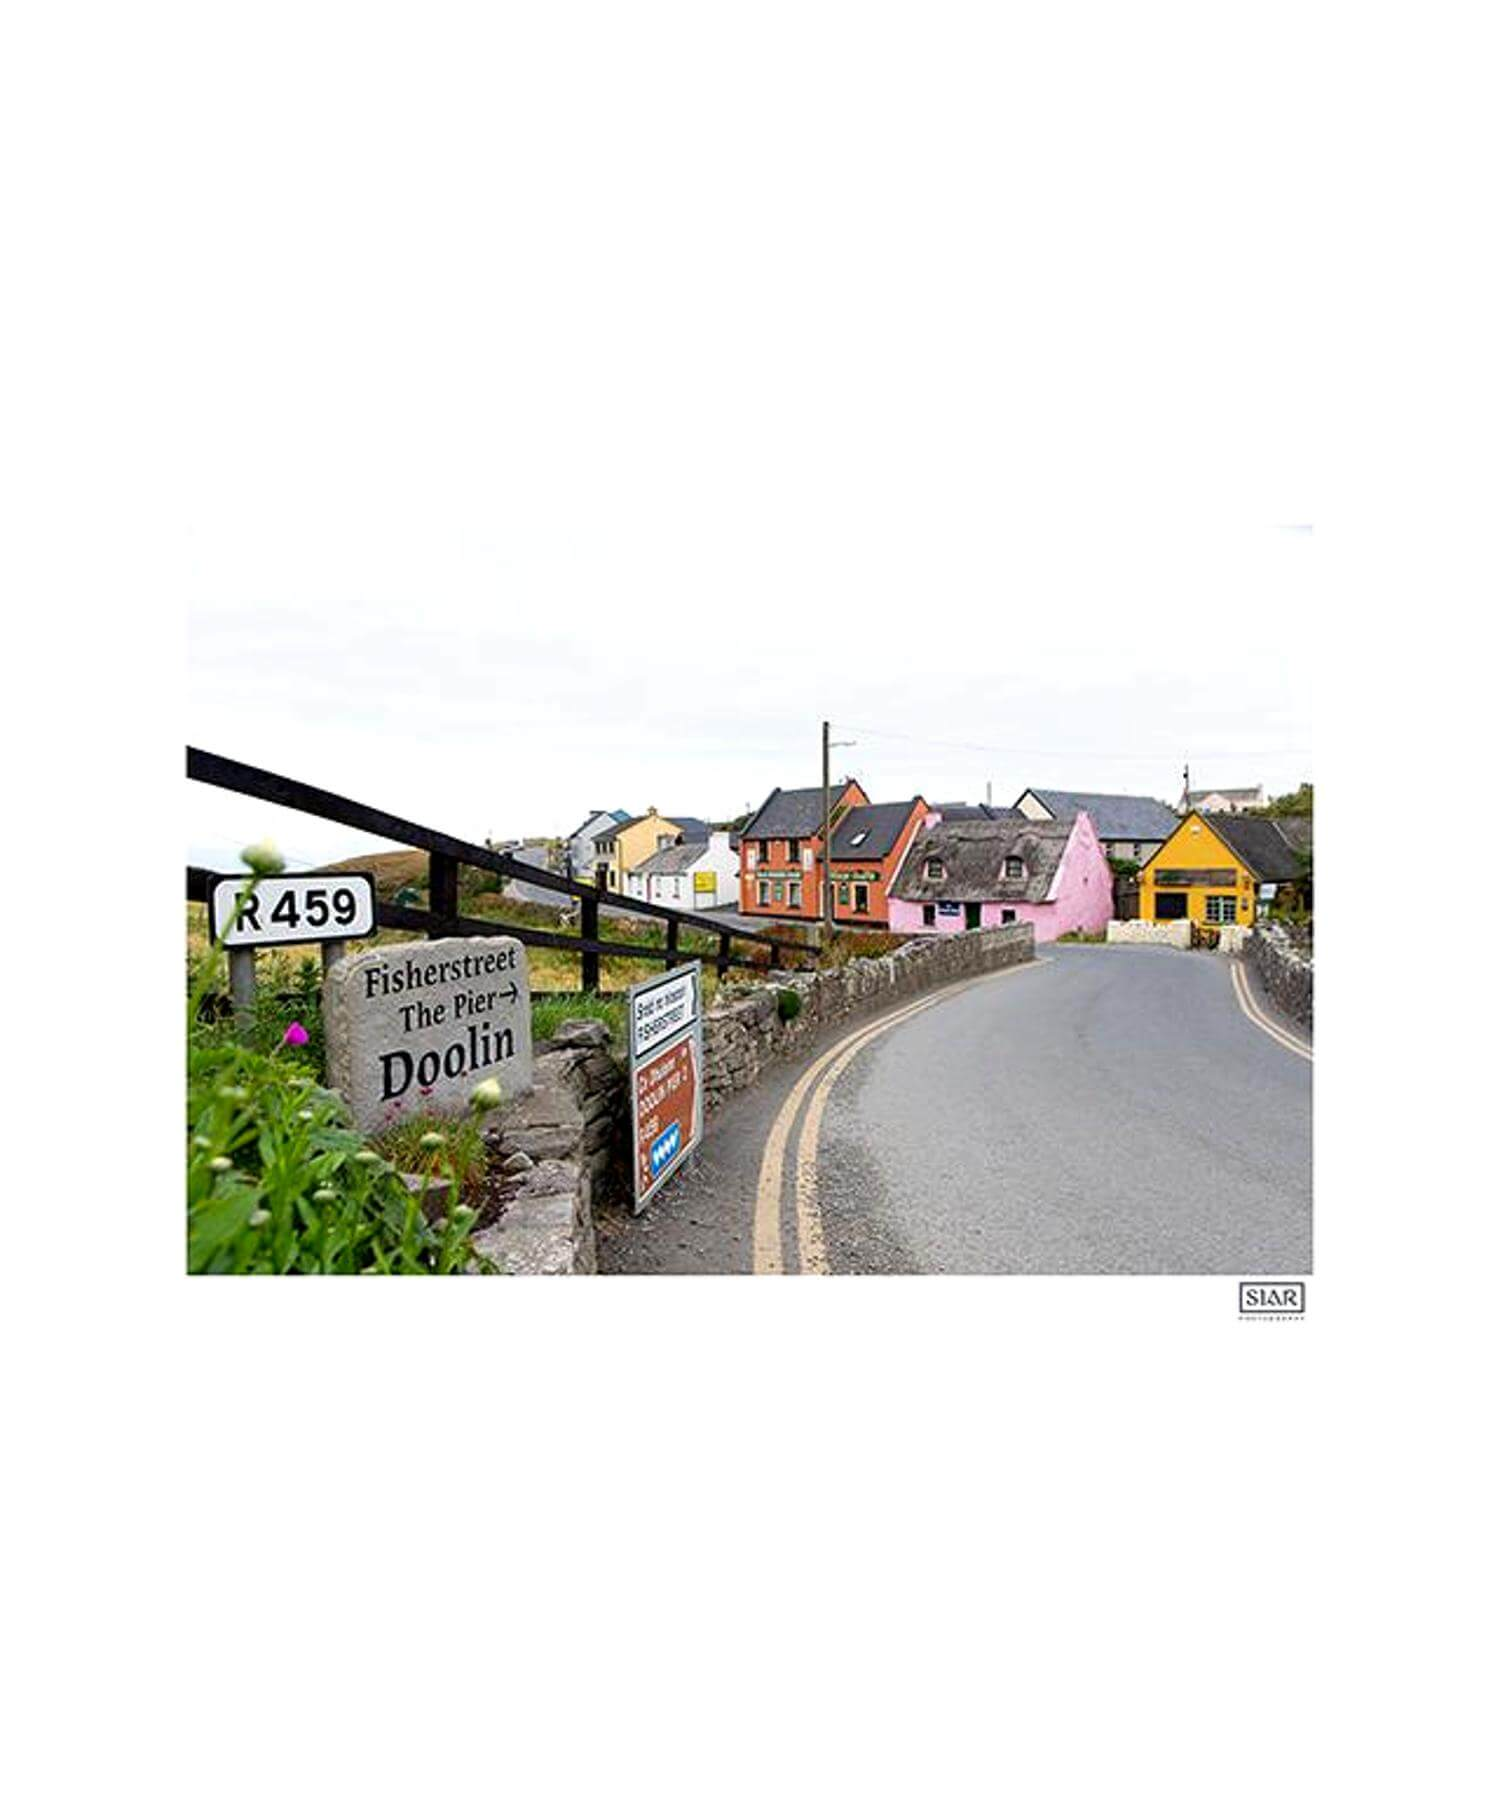 Fisher Street Doolin - [Siar Photography] - Wall Art & Photography - Irish Gifts